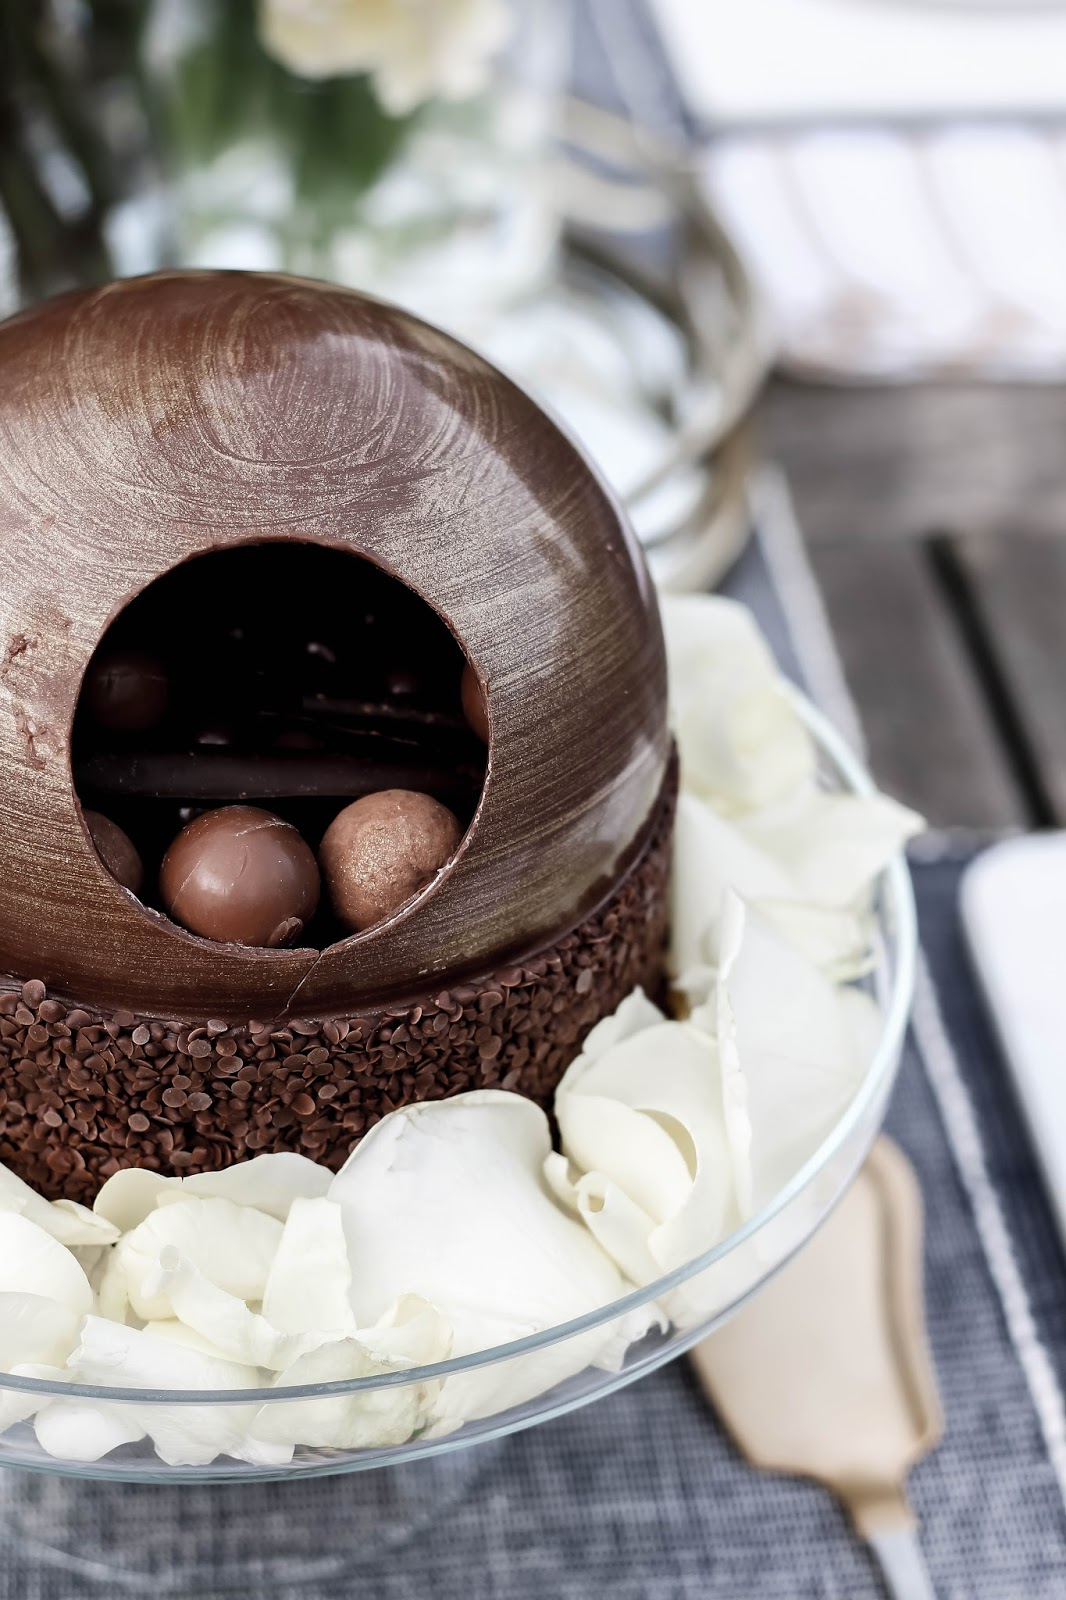 M&S Chocolate Dome Cake Filled With Truffles and Malteesers